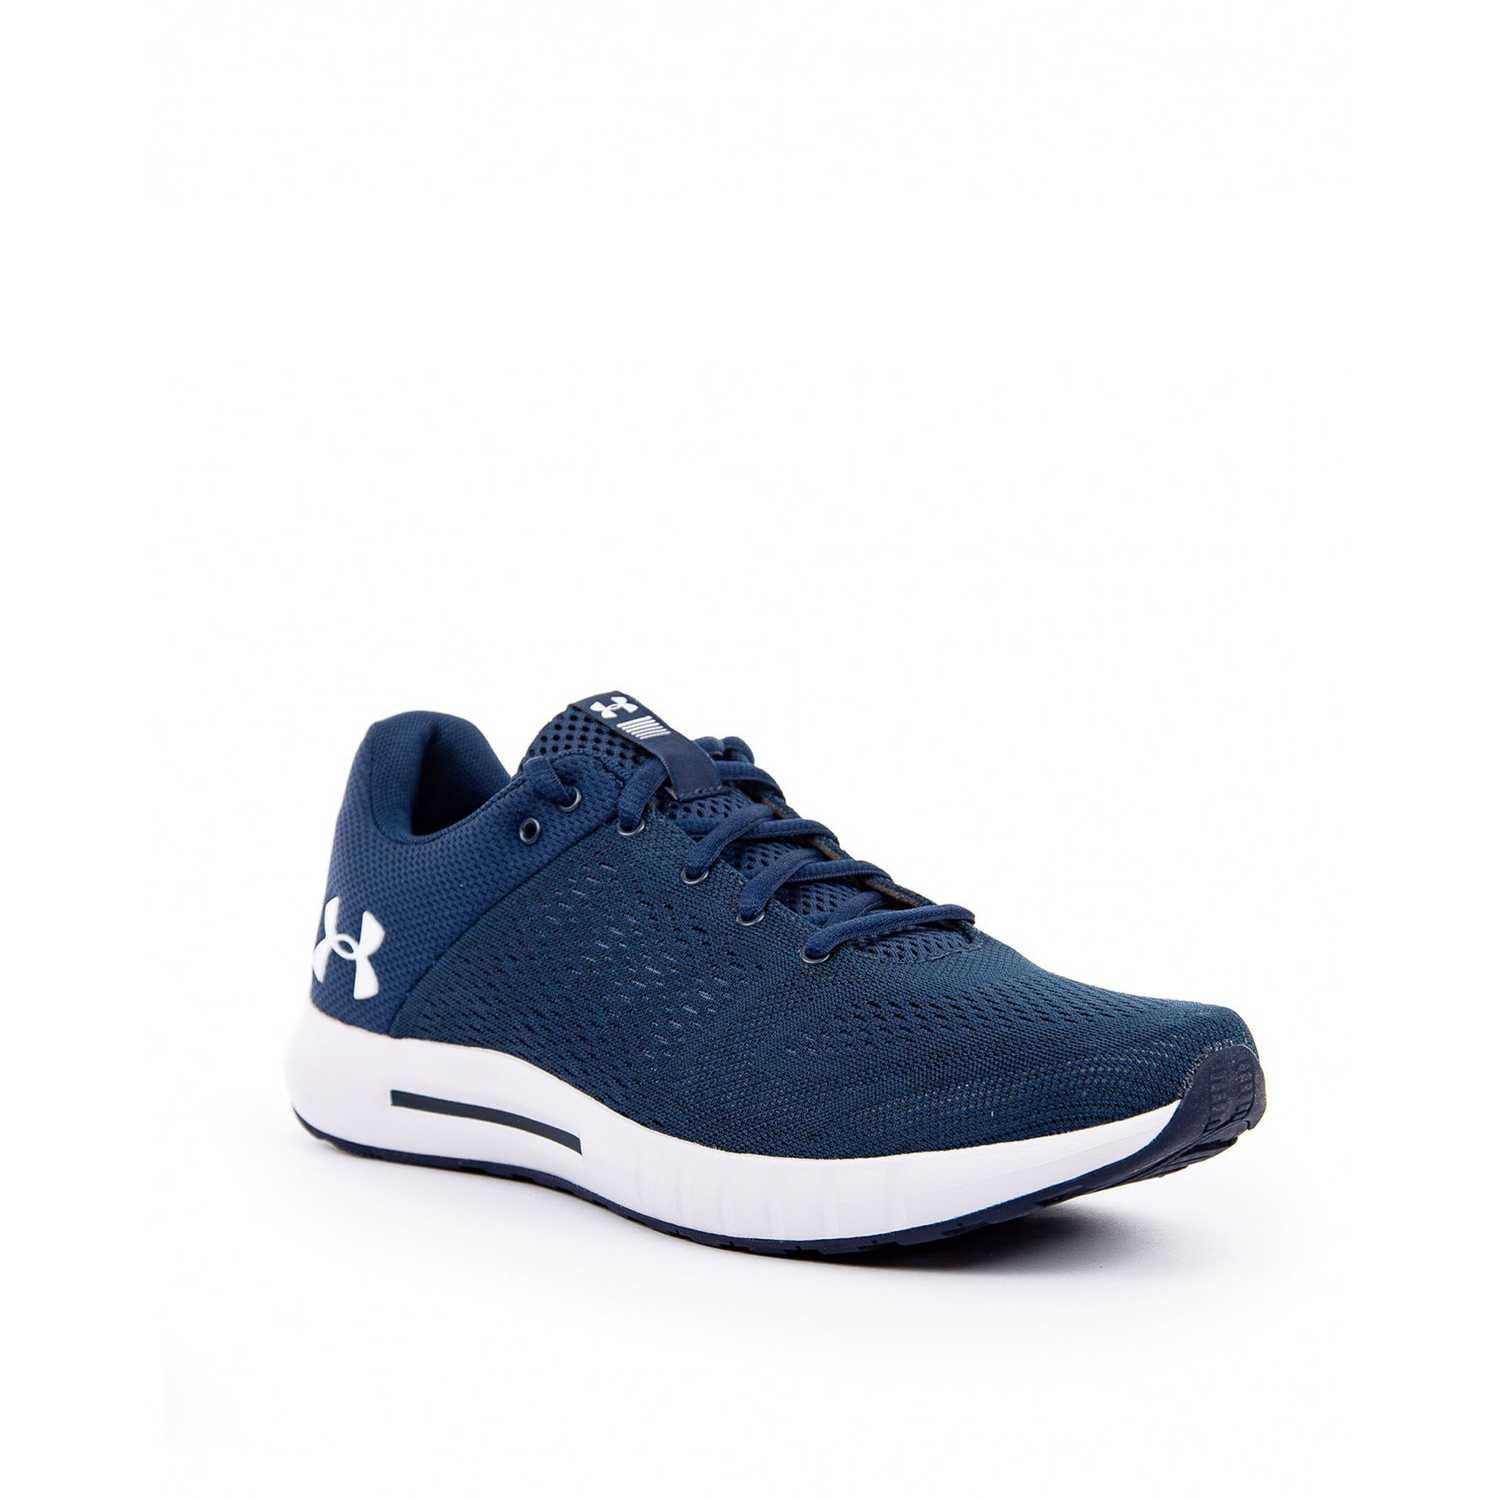 Zapatilla de Hombre Under Armour Azul / blanco ua micro g pursuit-nvy